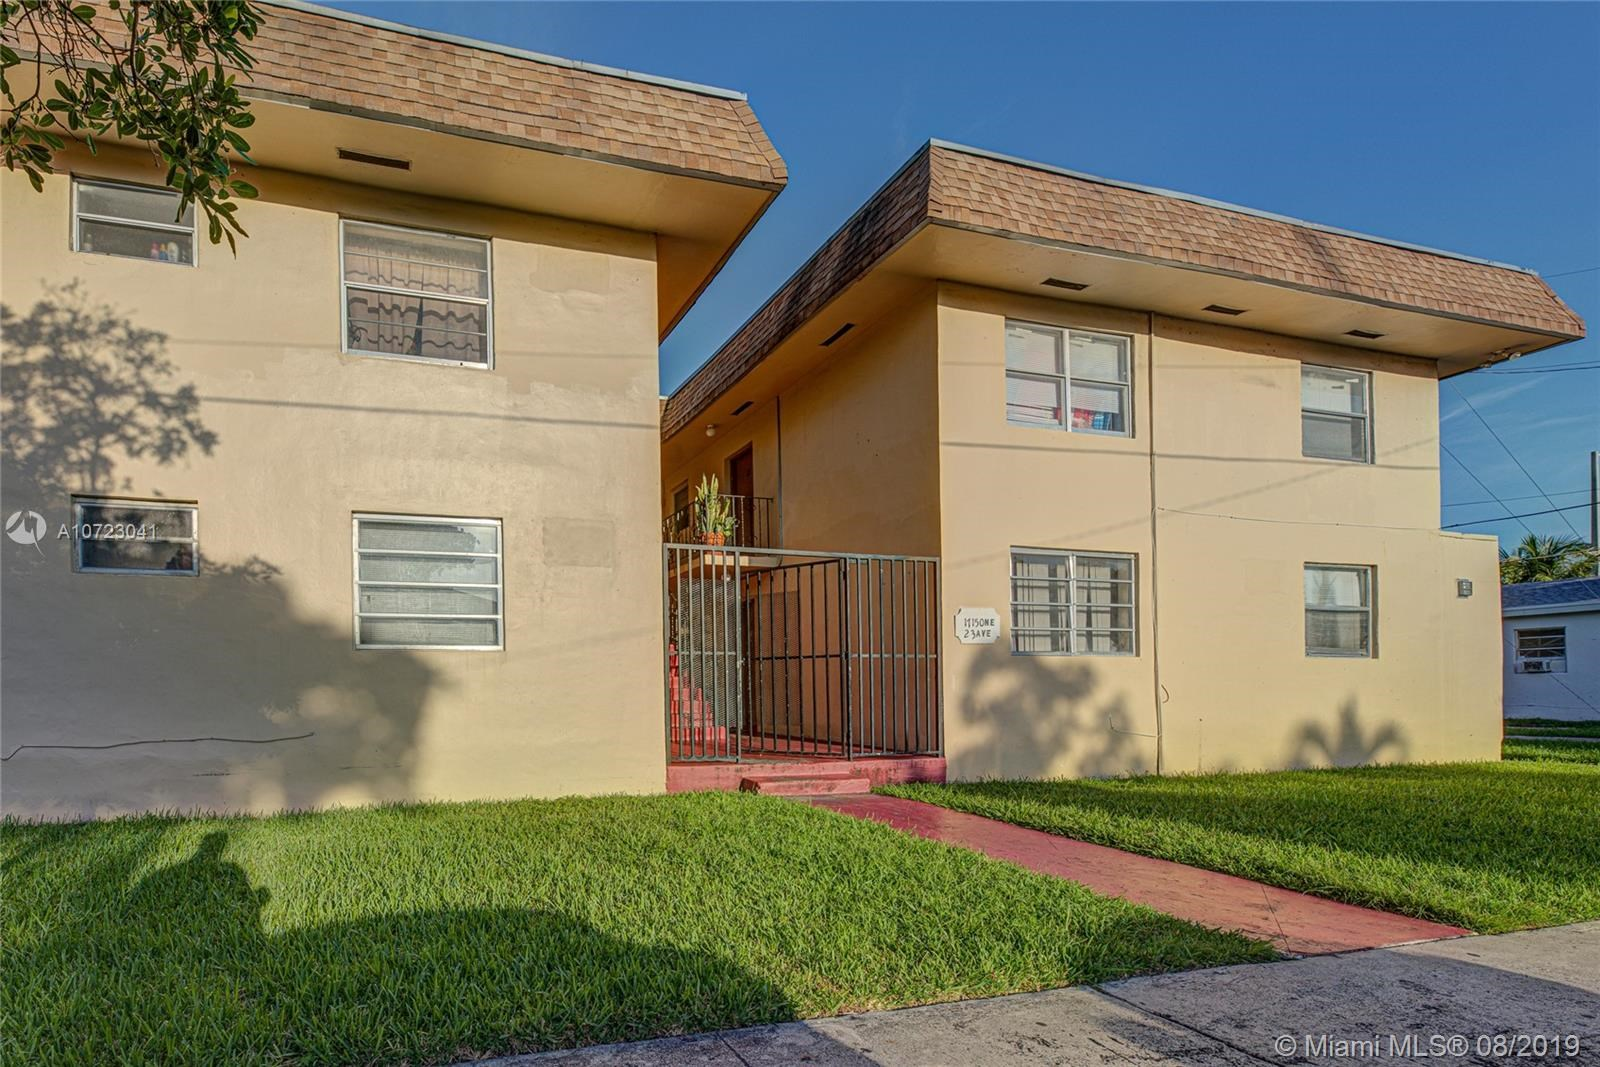 17150 NE 23rd Ave, North Miami Beach, FL 33160